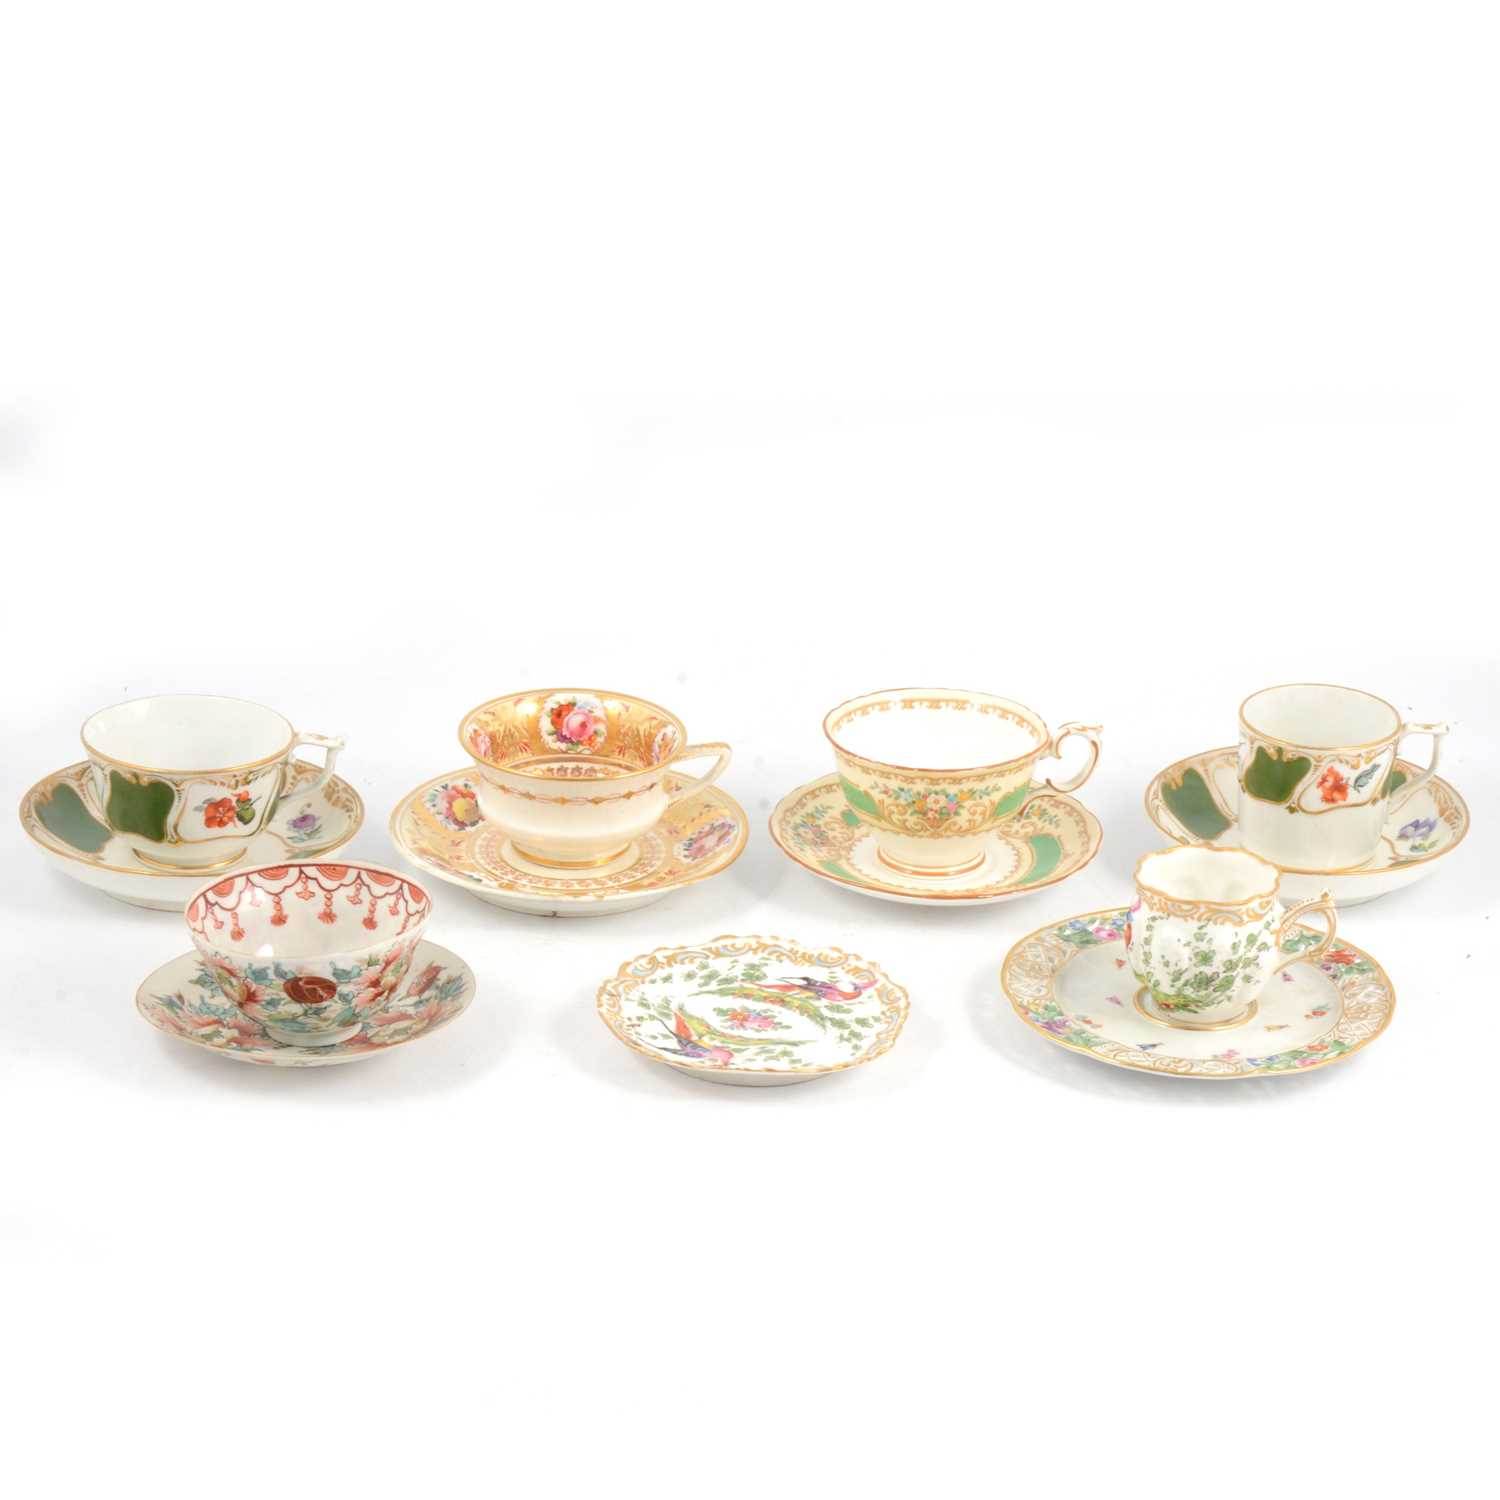 Lot 43 - Quantity of decorative cabinet cups and saucers